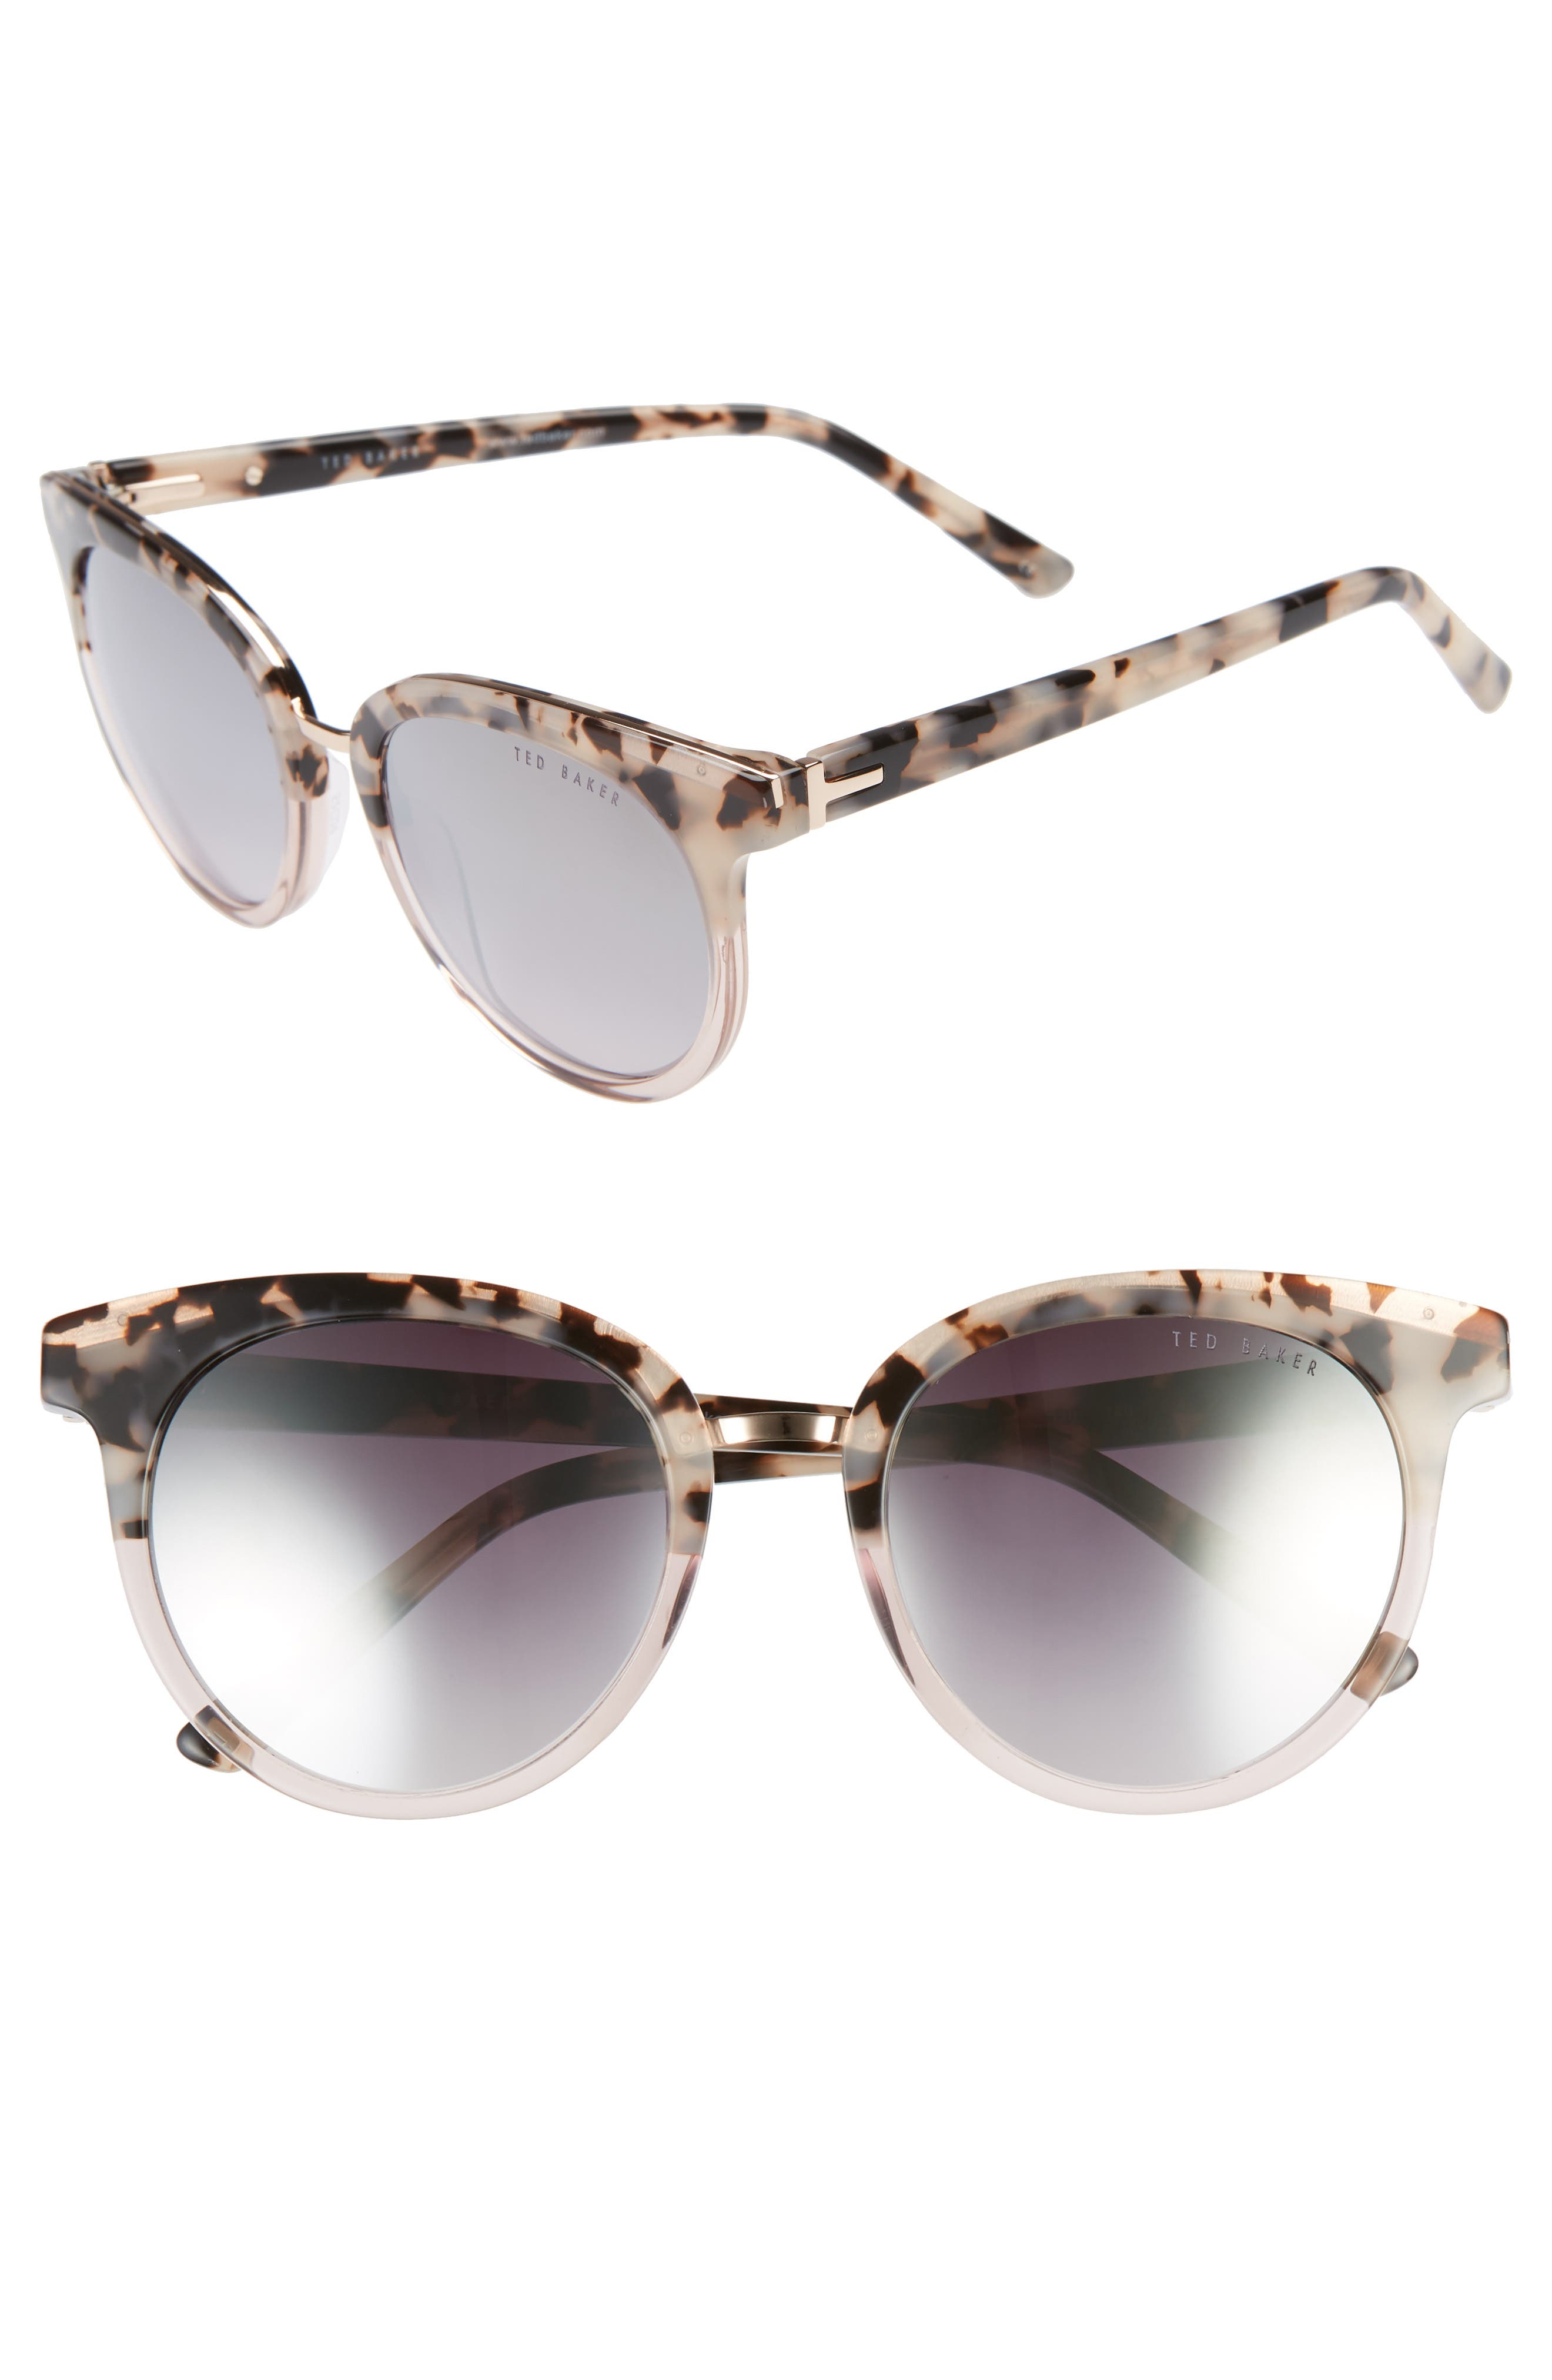 52mm Round Sunglasses,                             Main thumbnail 1, color,                             IVORY